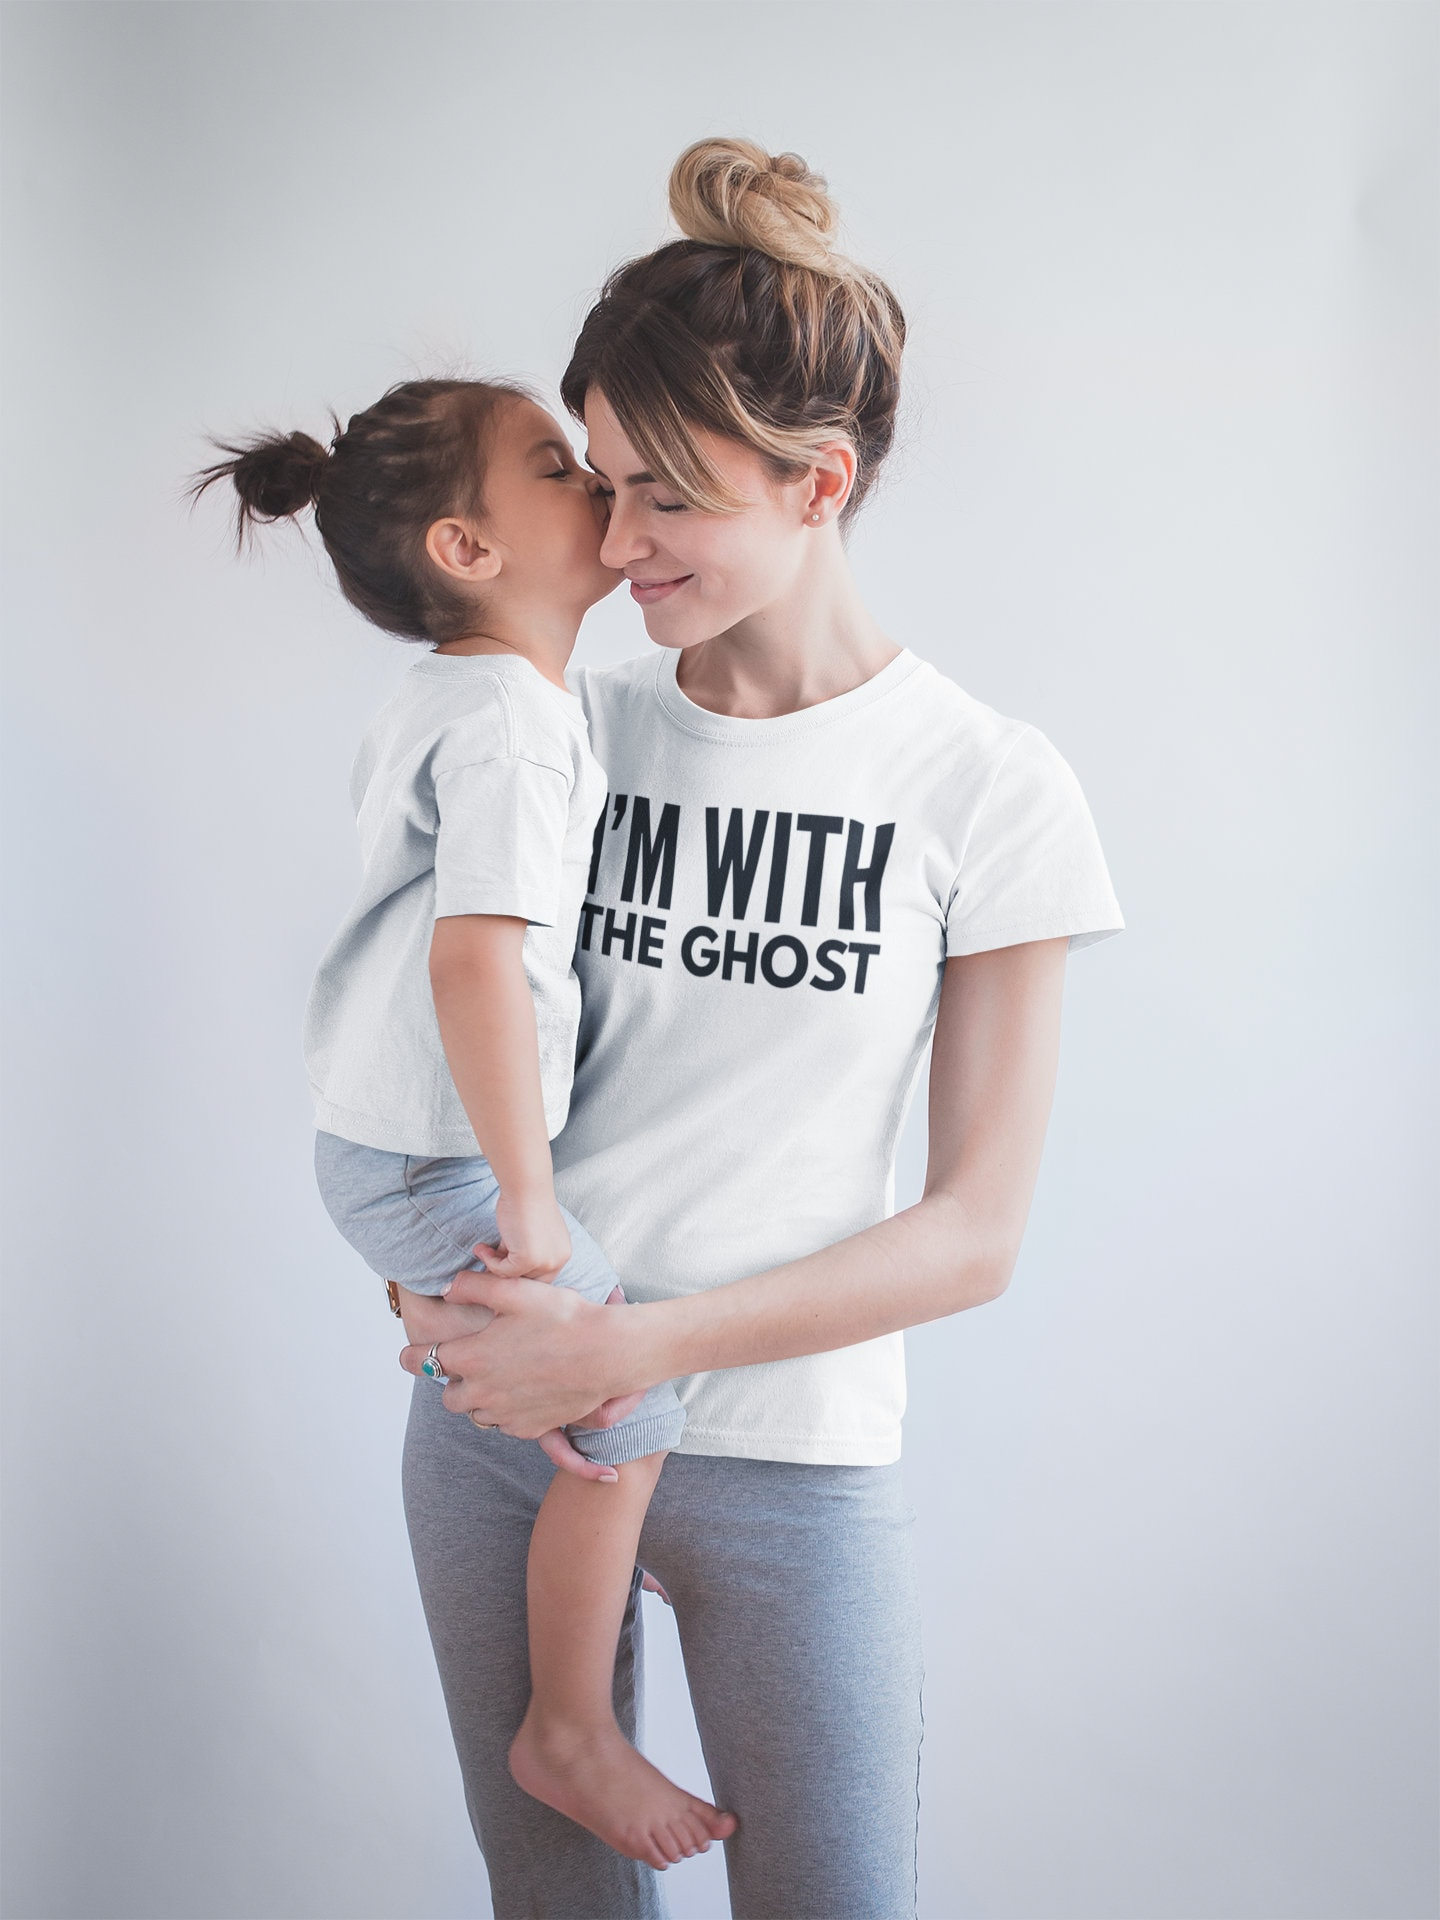 Im With The Ghost Unisex Halloween T Shirt Mother Etsy